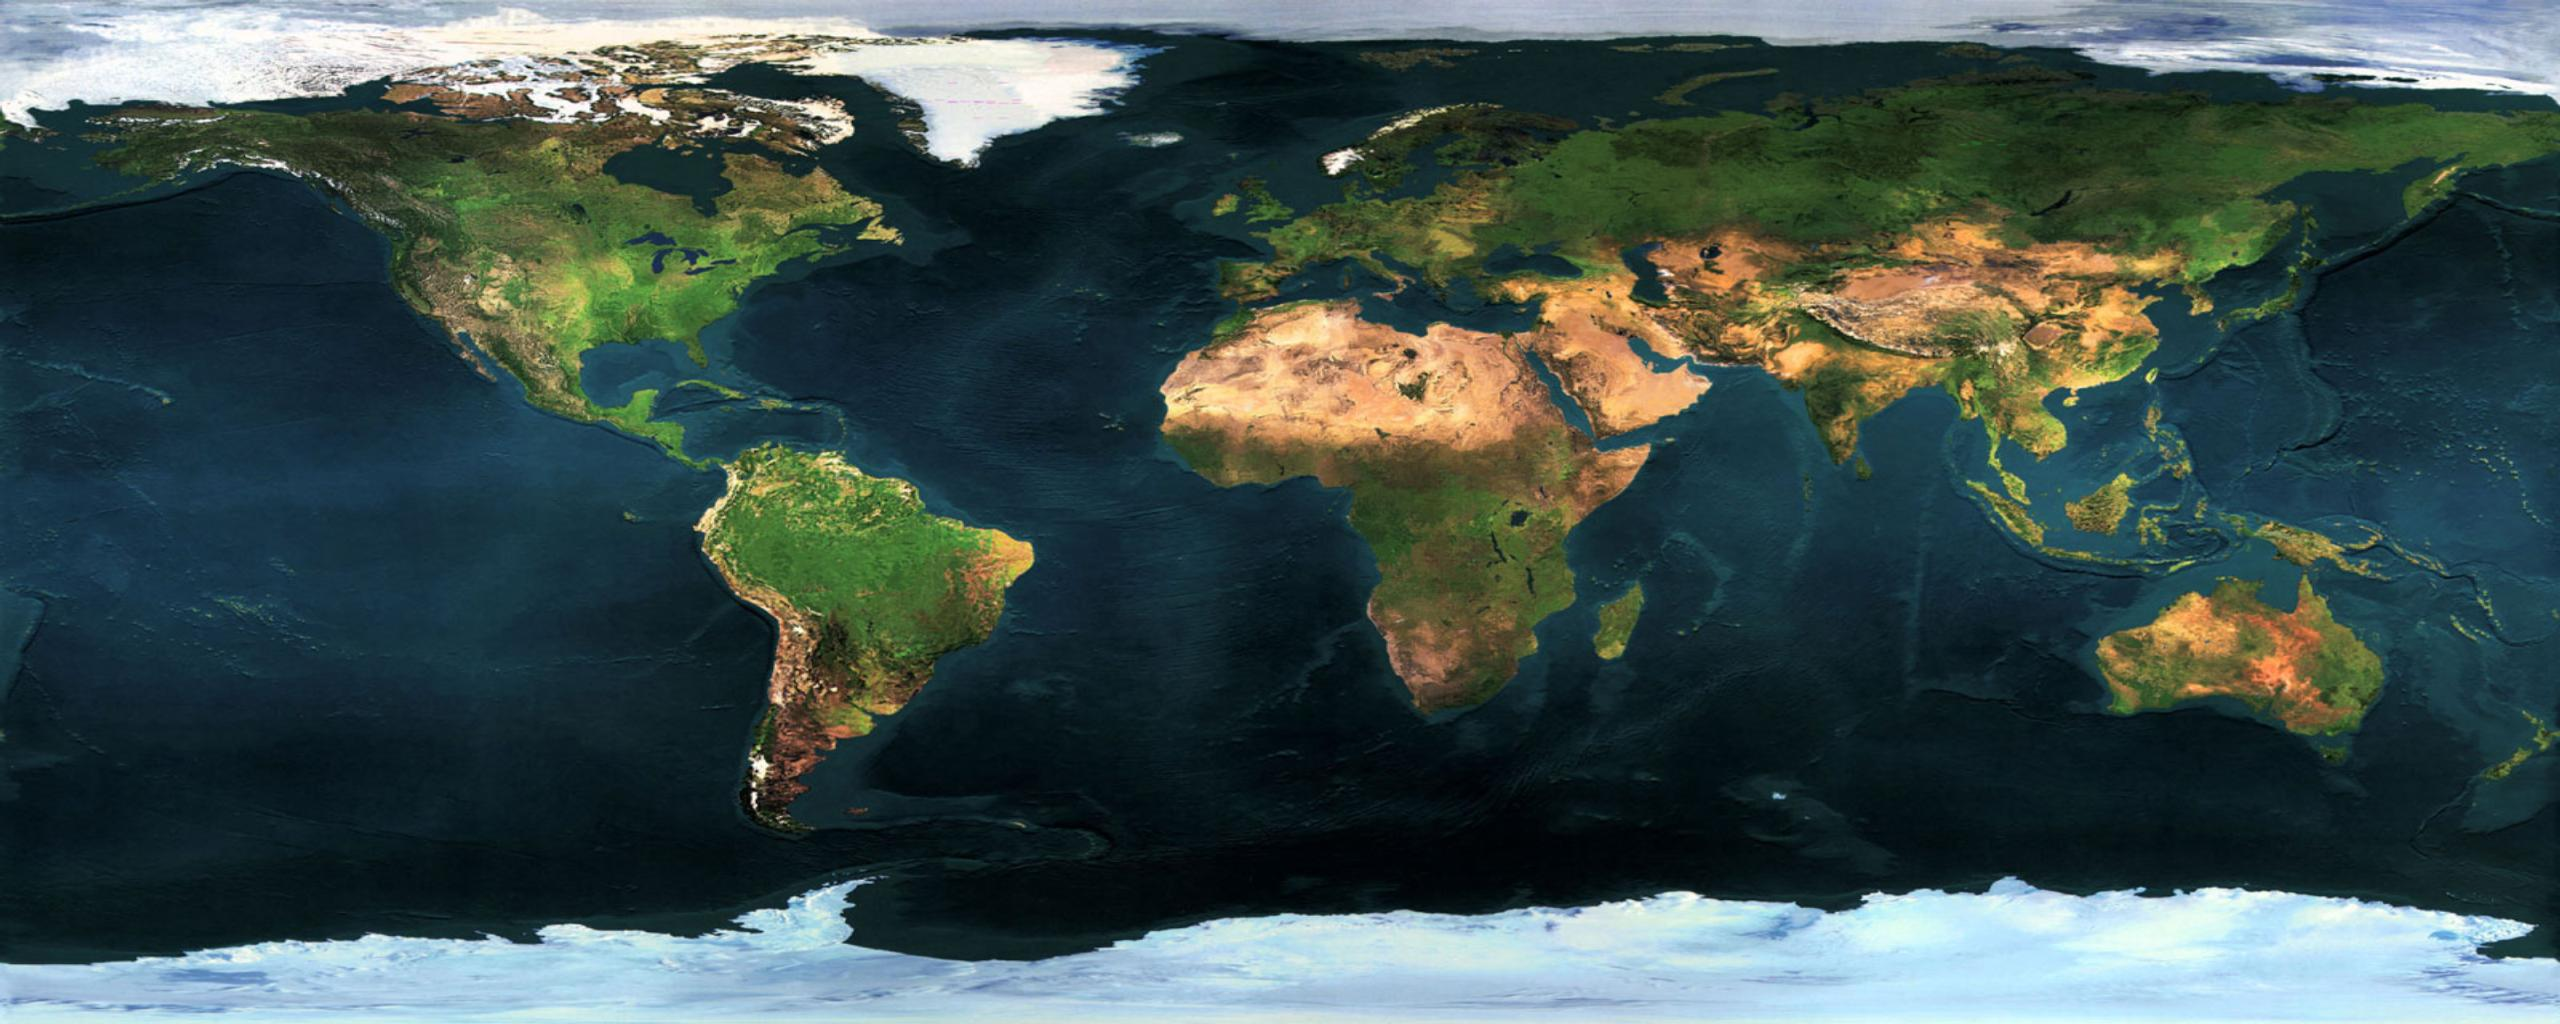 World Map Wallpaper And Background Image X ID - World map screen wallpaper